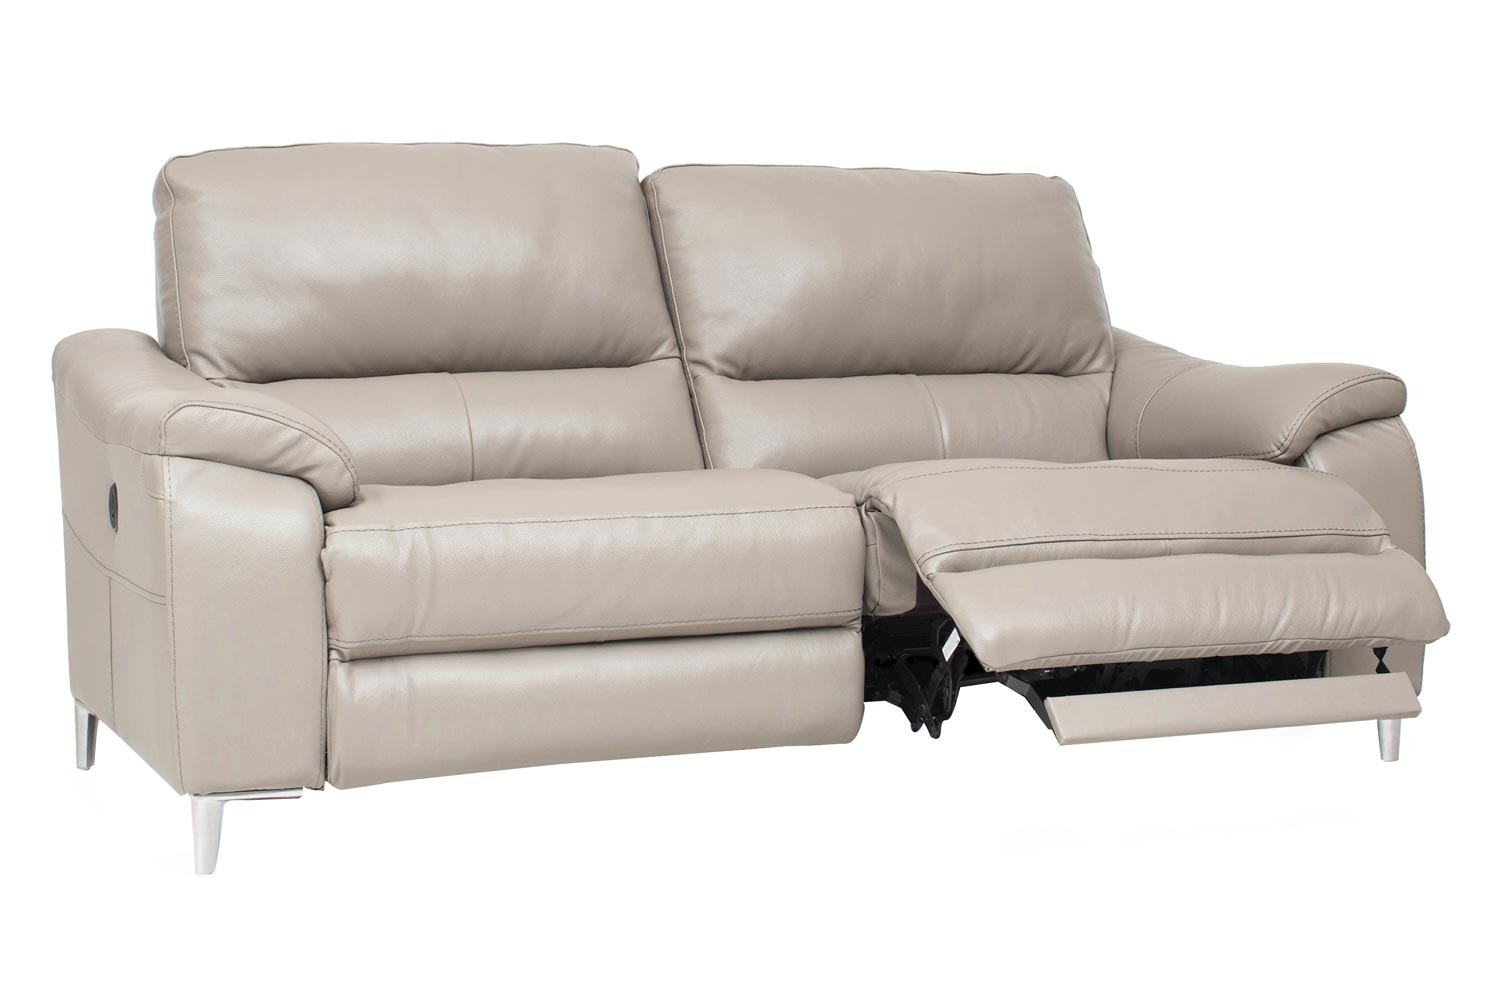 Yvezza 3 Seater Electric Recliner Sofa| Grey